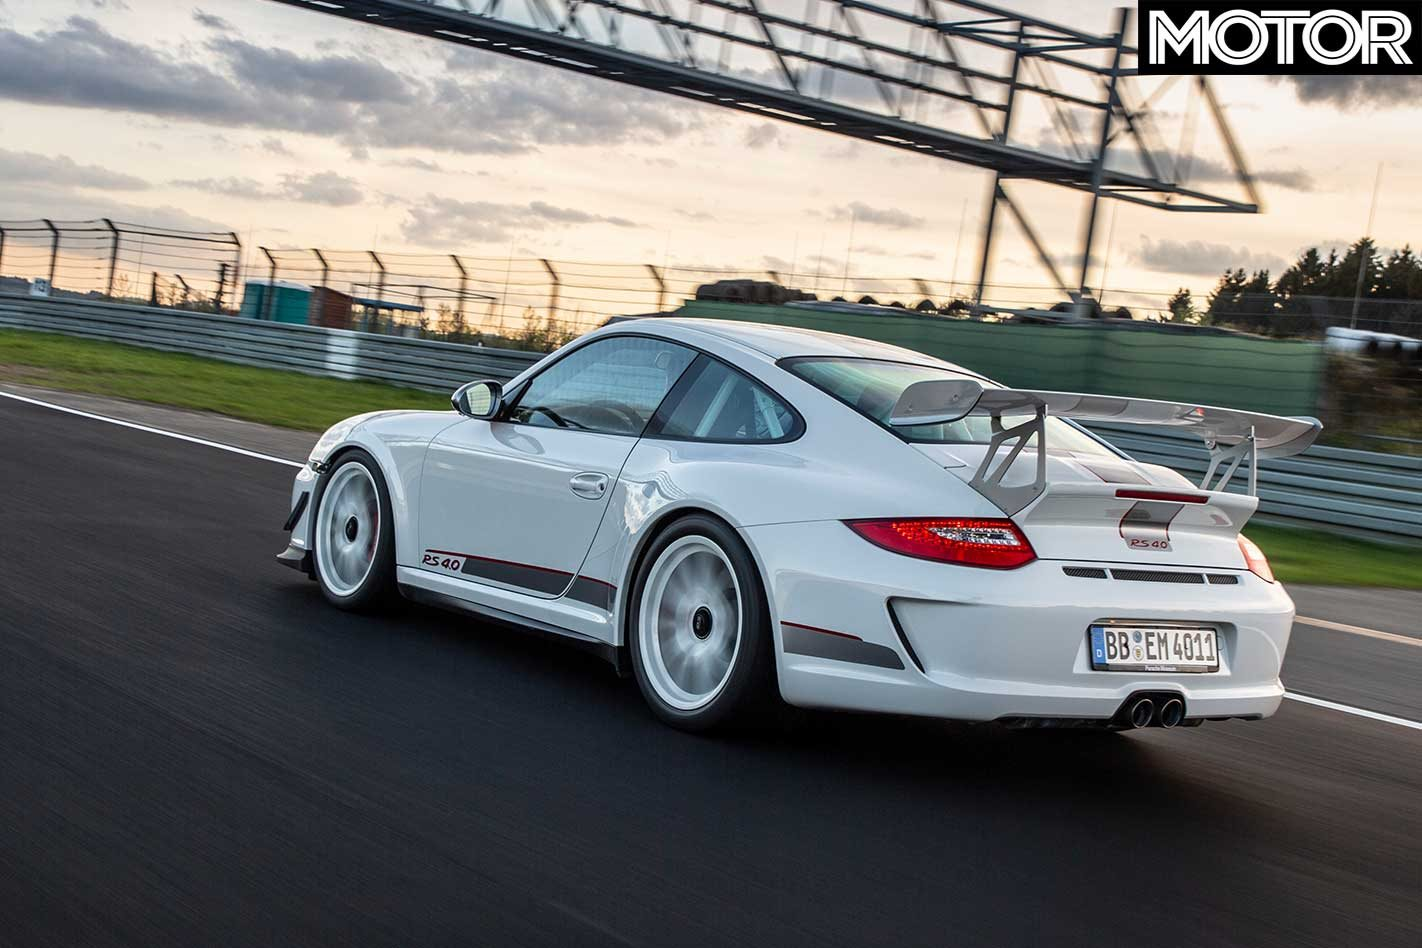 2011 Porsche 911 997 Gt3 Rs 40 The Five Greatest 911s 996 Engine Cylinder Diagram Final Was Last With Hydraulic Steering And A Handbrake History Shows That Each Time Removes Technology Like Air Cooled